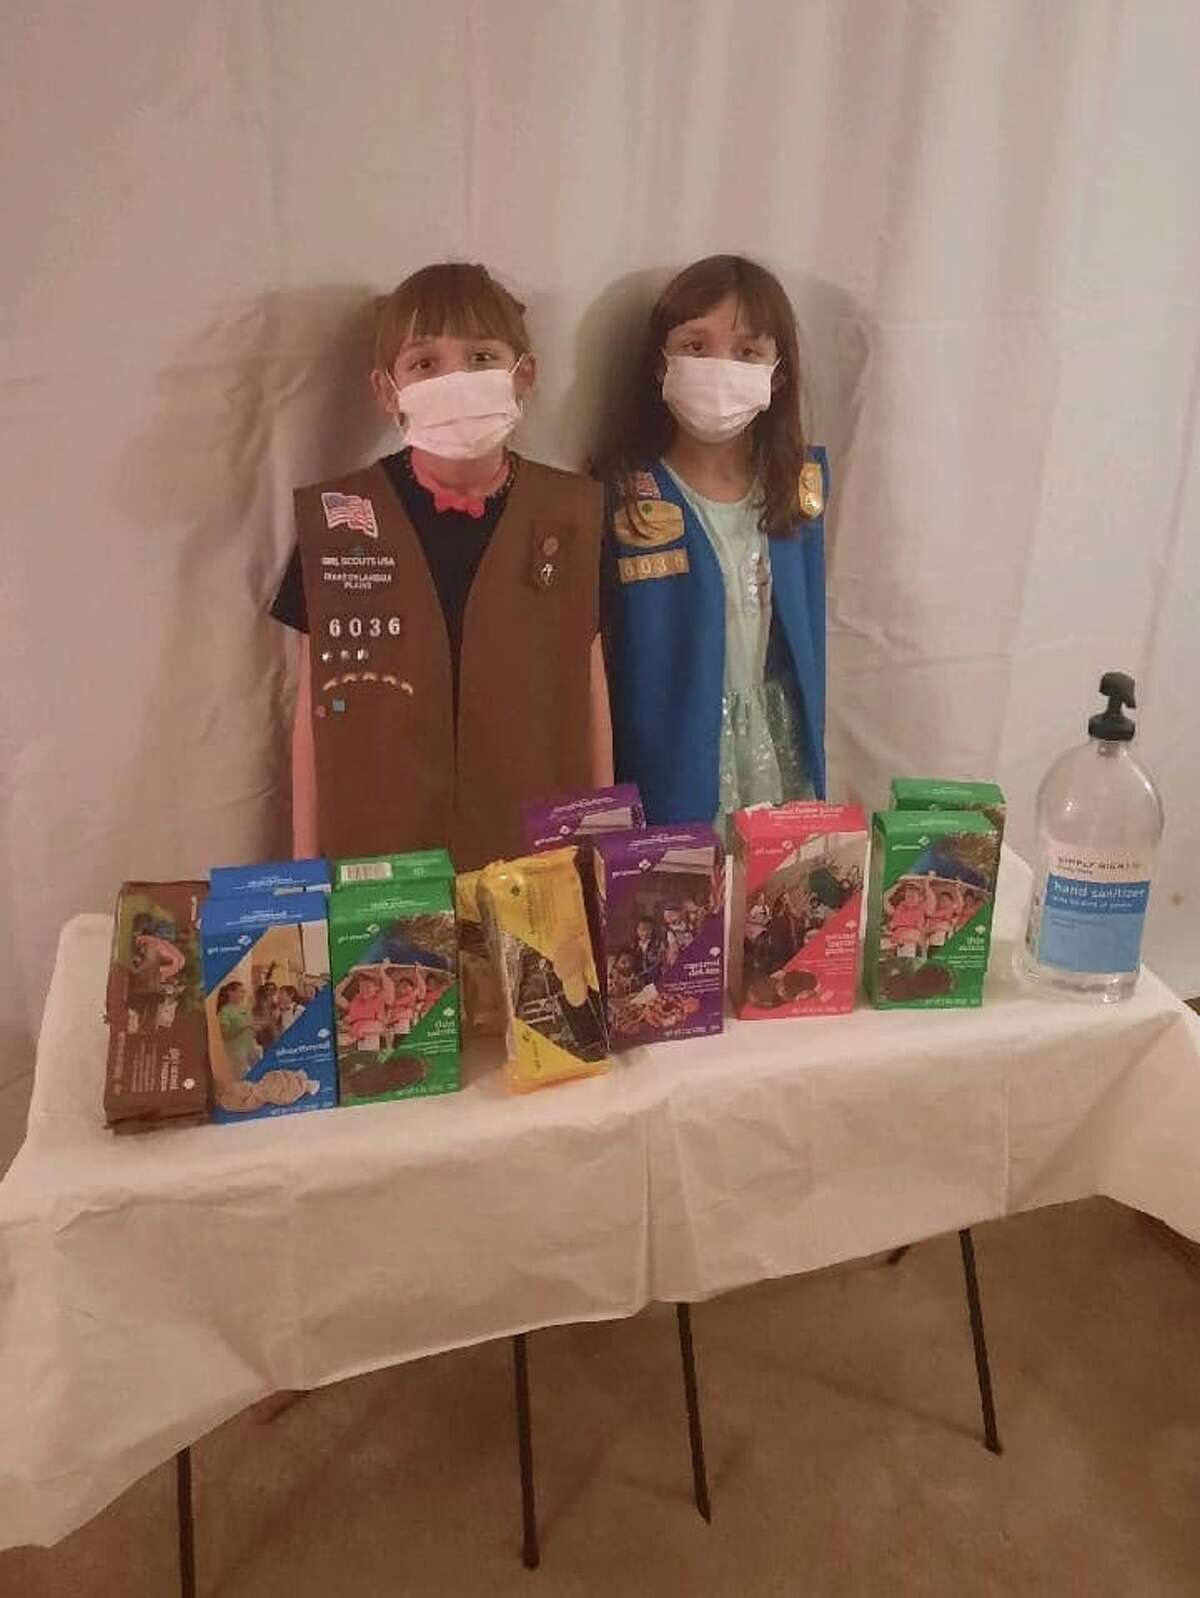 Cookie season is here and local Girl Scouts will be selling boxes until March 7. Pictured (L-R): Makayla and Rebecca of Girl Scout Troop 6036